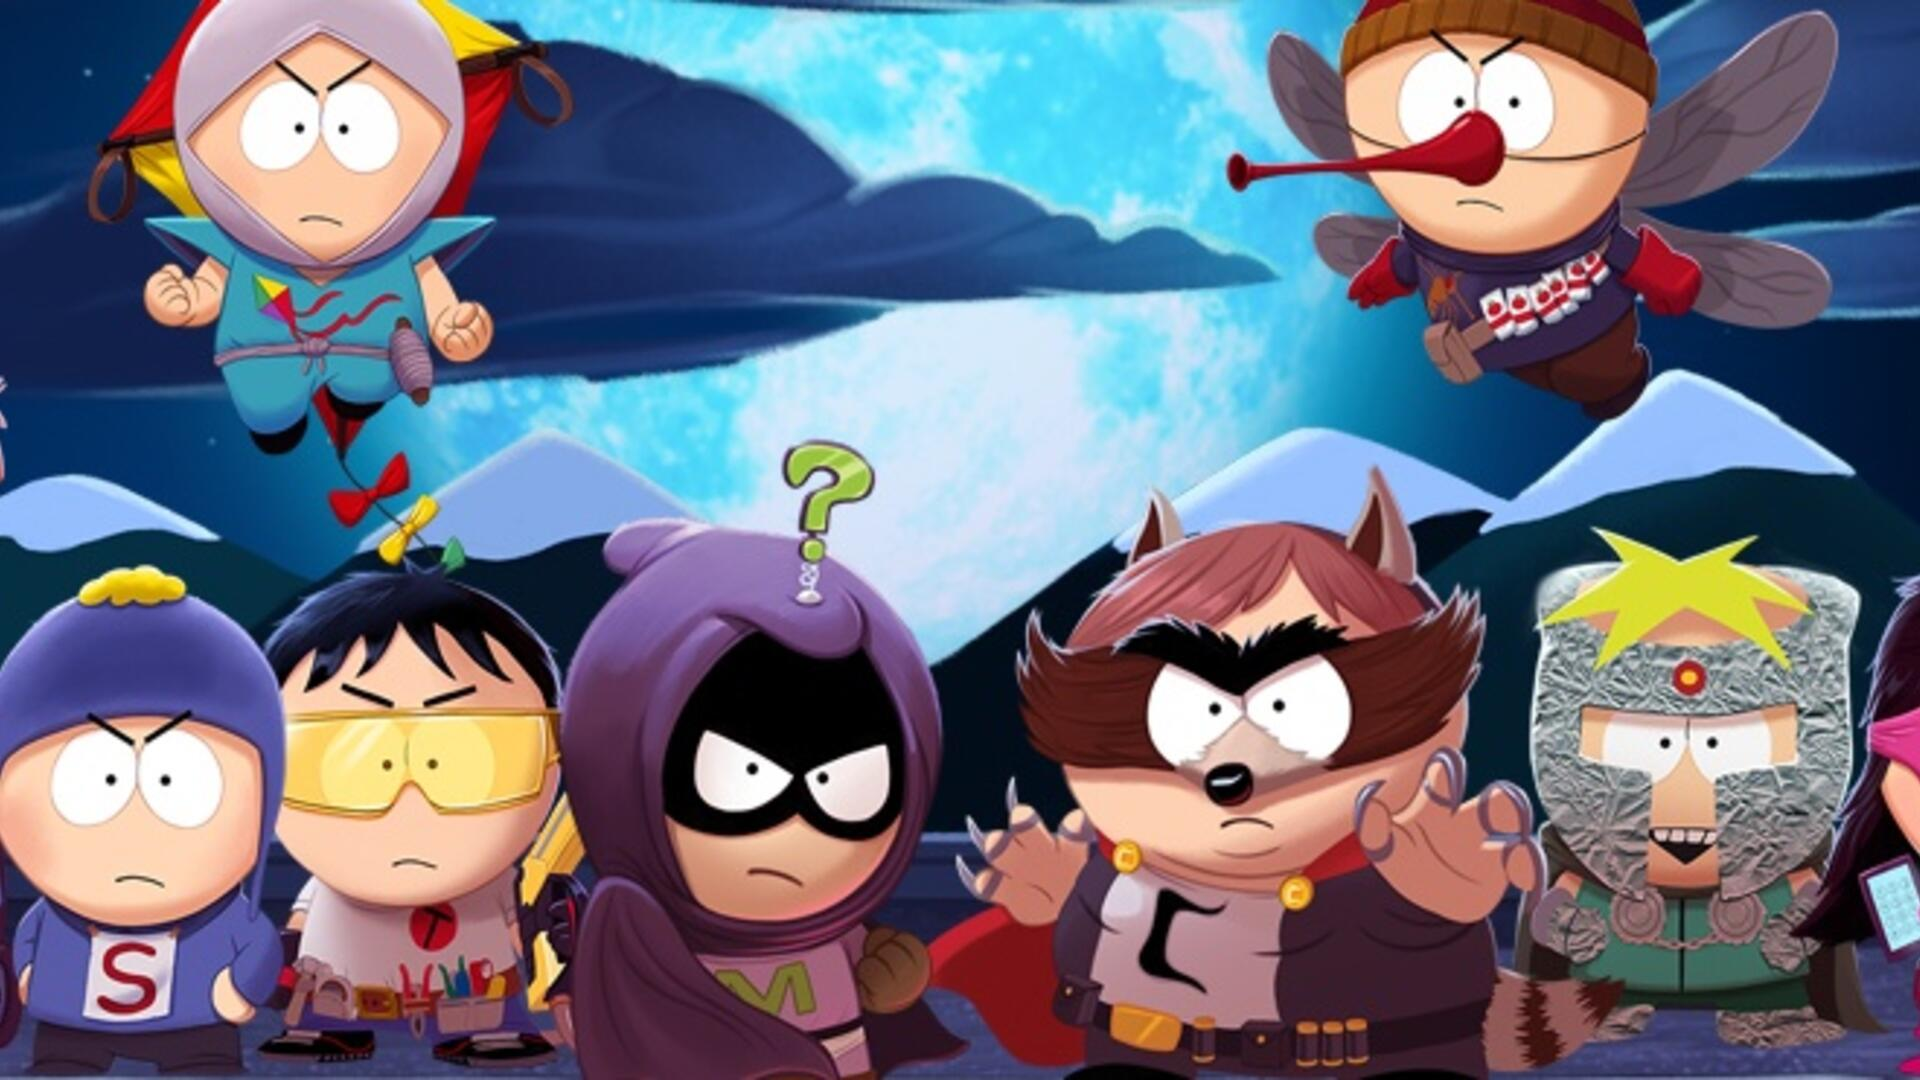 South Park: The Fractured But Whole Guide - Beginner's Guide, Combat